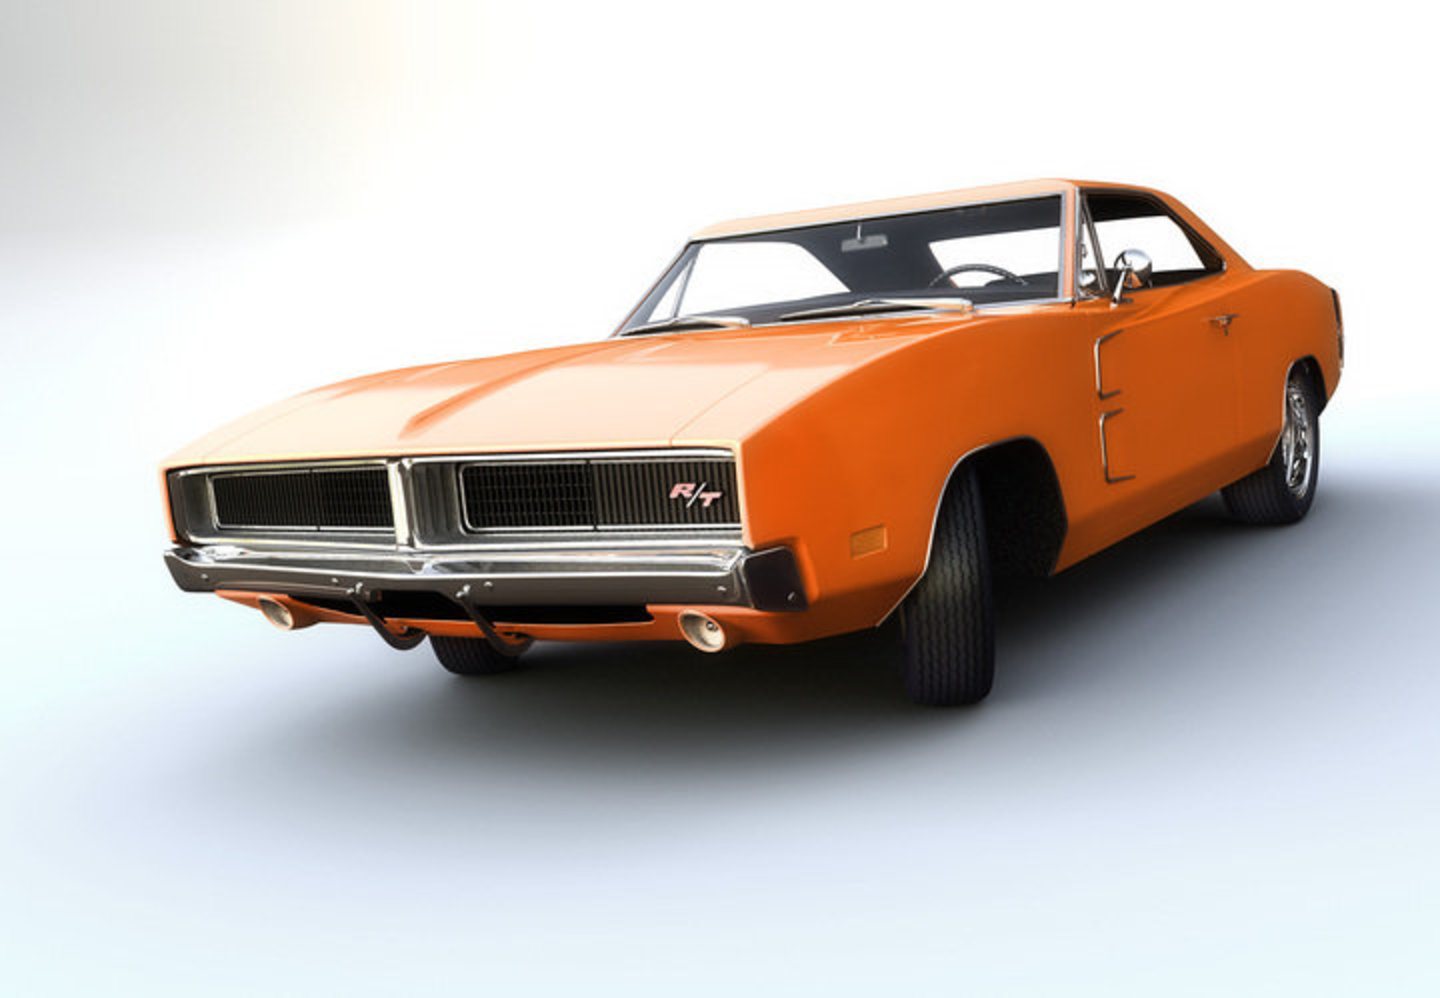 Topworldauto Photos Of Dodge Charger Rt Se Photo Galleries 1969 Wiring Diagram Huge Collection Cars Auto News And Reviews